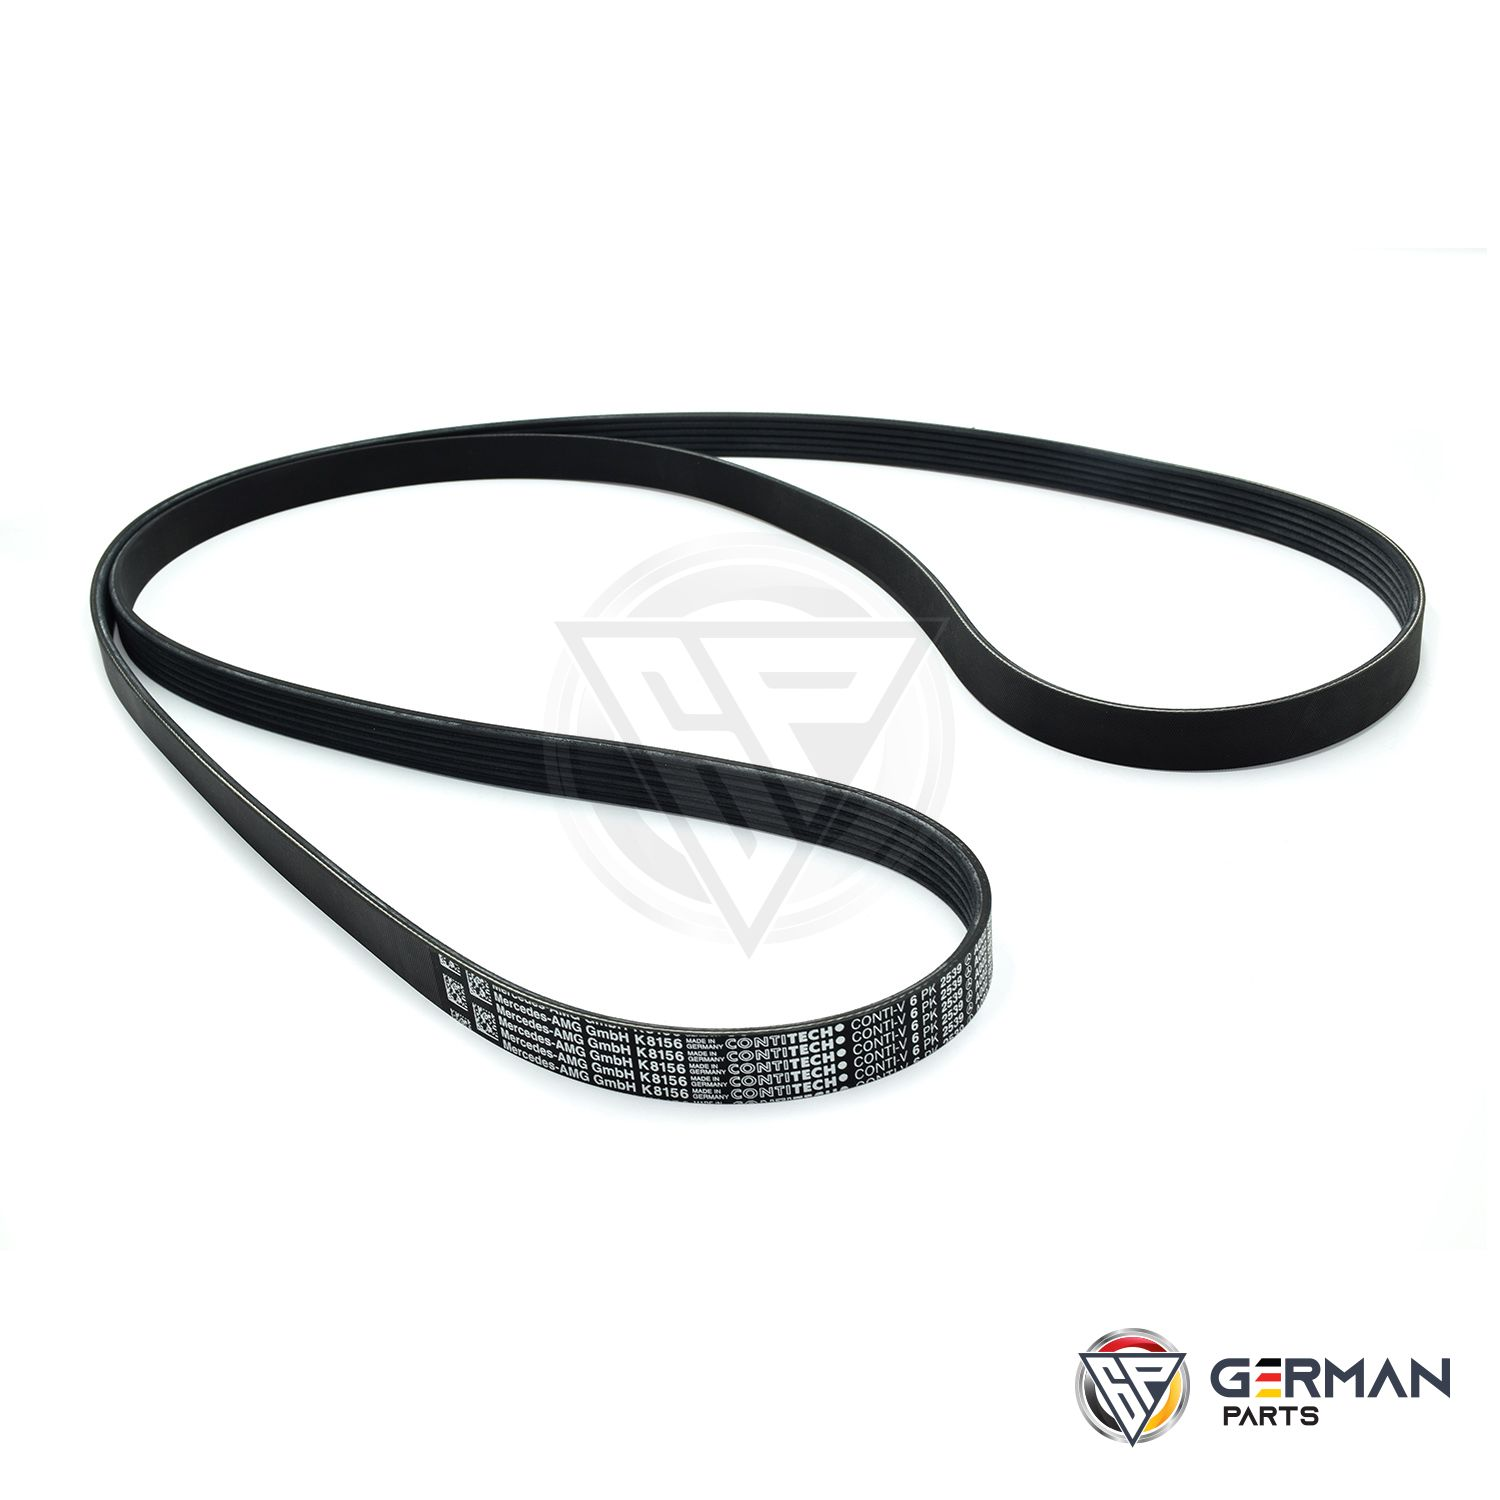 Buy Mercedes Benz V Belt 0029936596 - German Parts